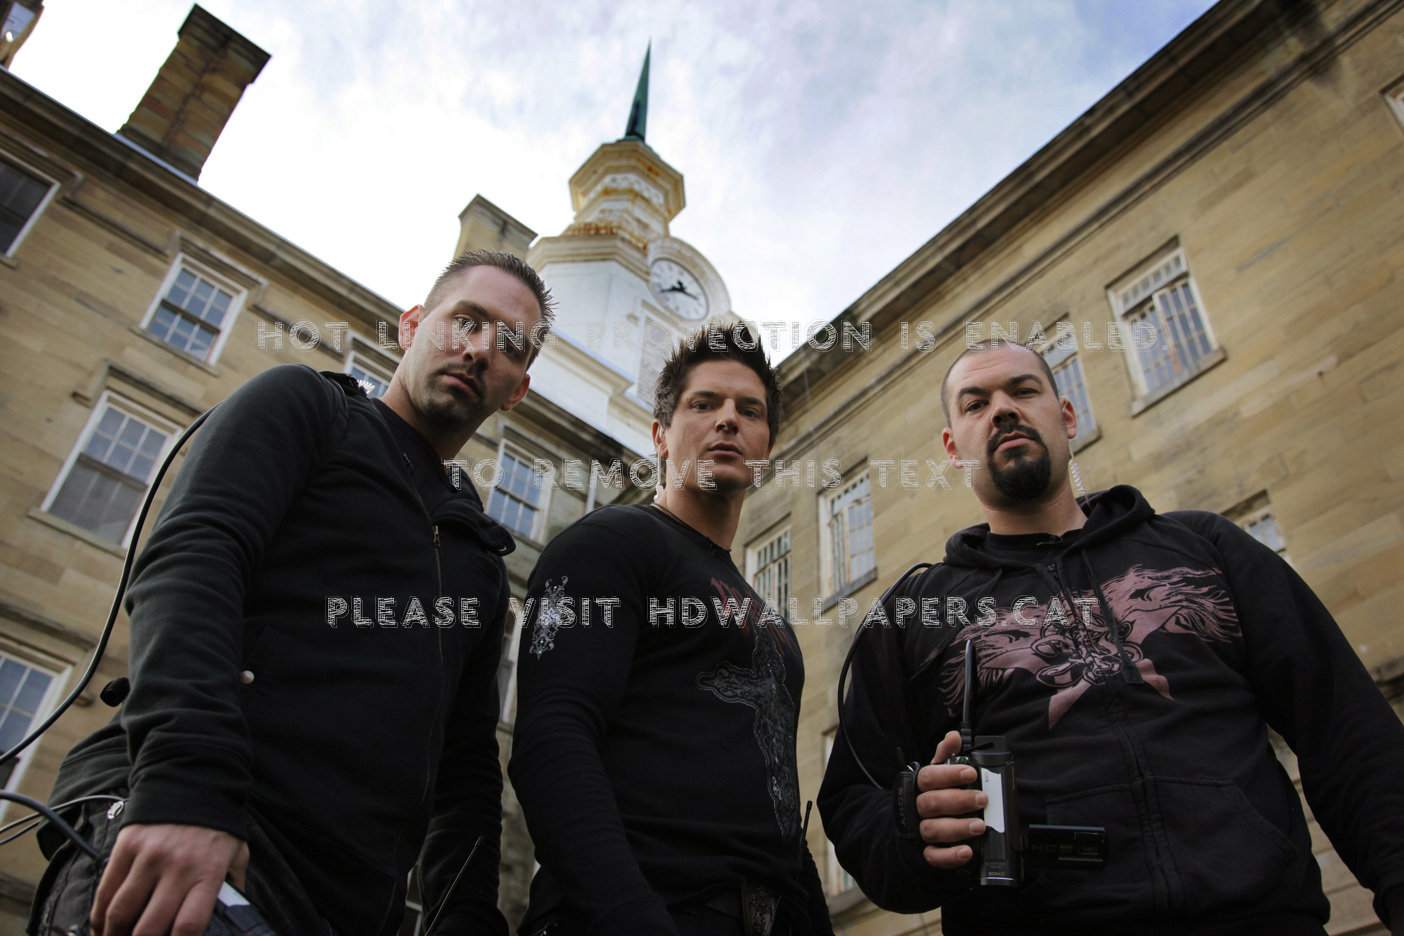 ghost adventures wallpaper,tourism,architecture,event,travel,building